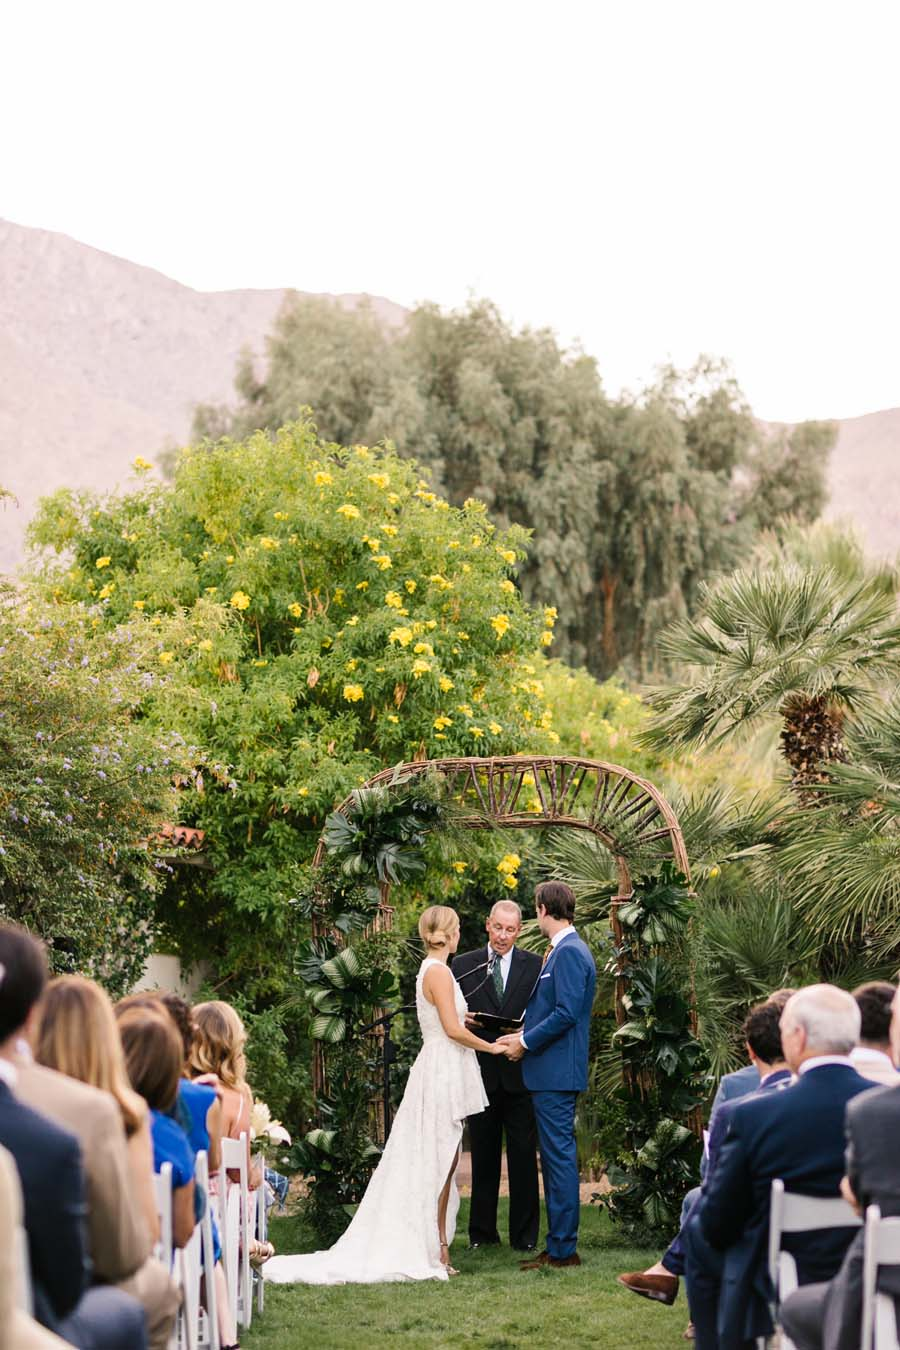 stylishdetailsevents.com | Colony Palms Weddings | Stylish Details Planning and Event Design | Julia Robbs Photography | Southern California and Hawaii Wedding Planner  0 (1).jpg